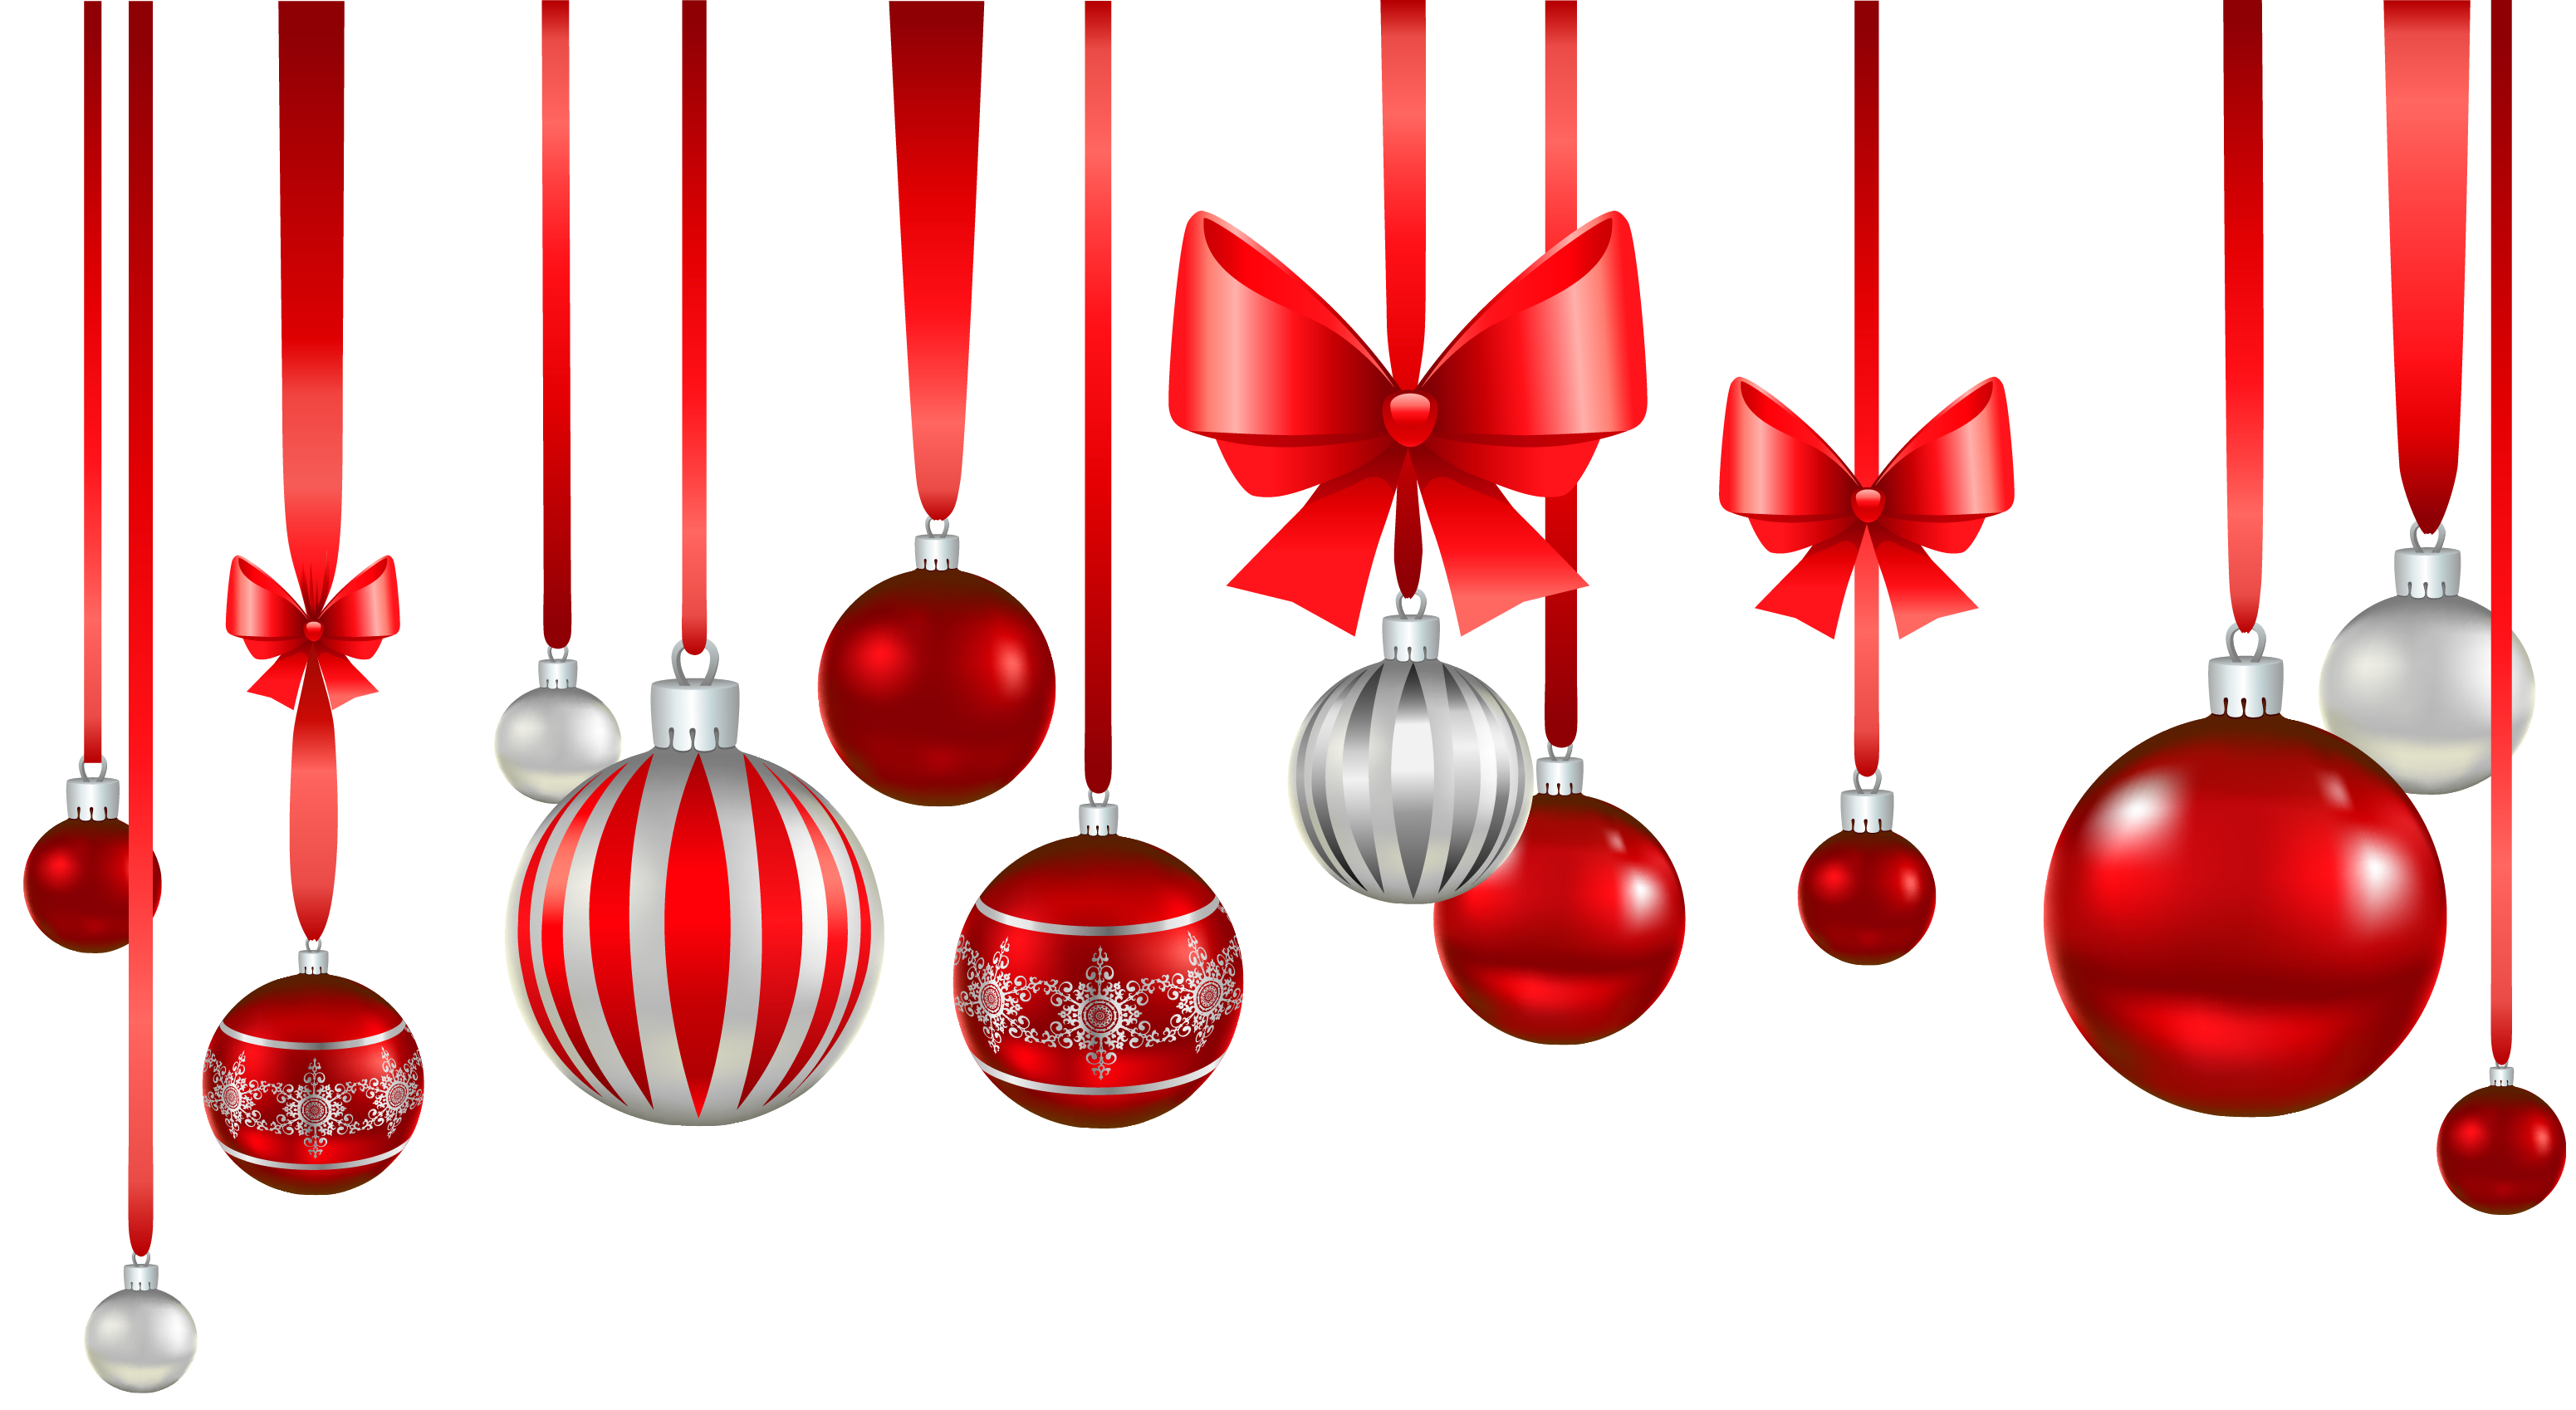 Png Christmas Decorations.Christmas Ornament Png Transparent Christmas Ornament Png